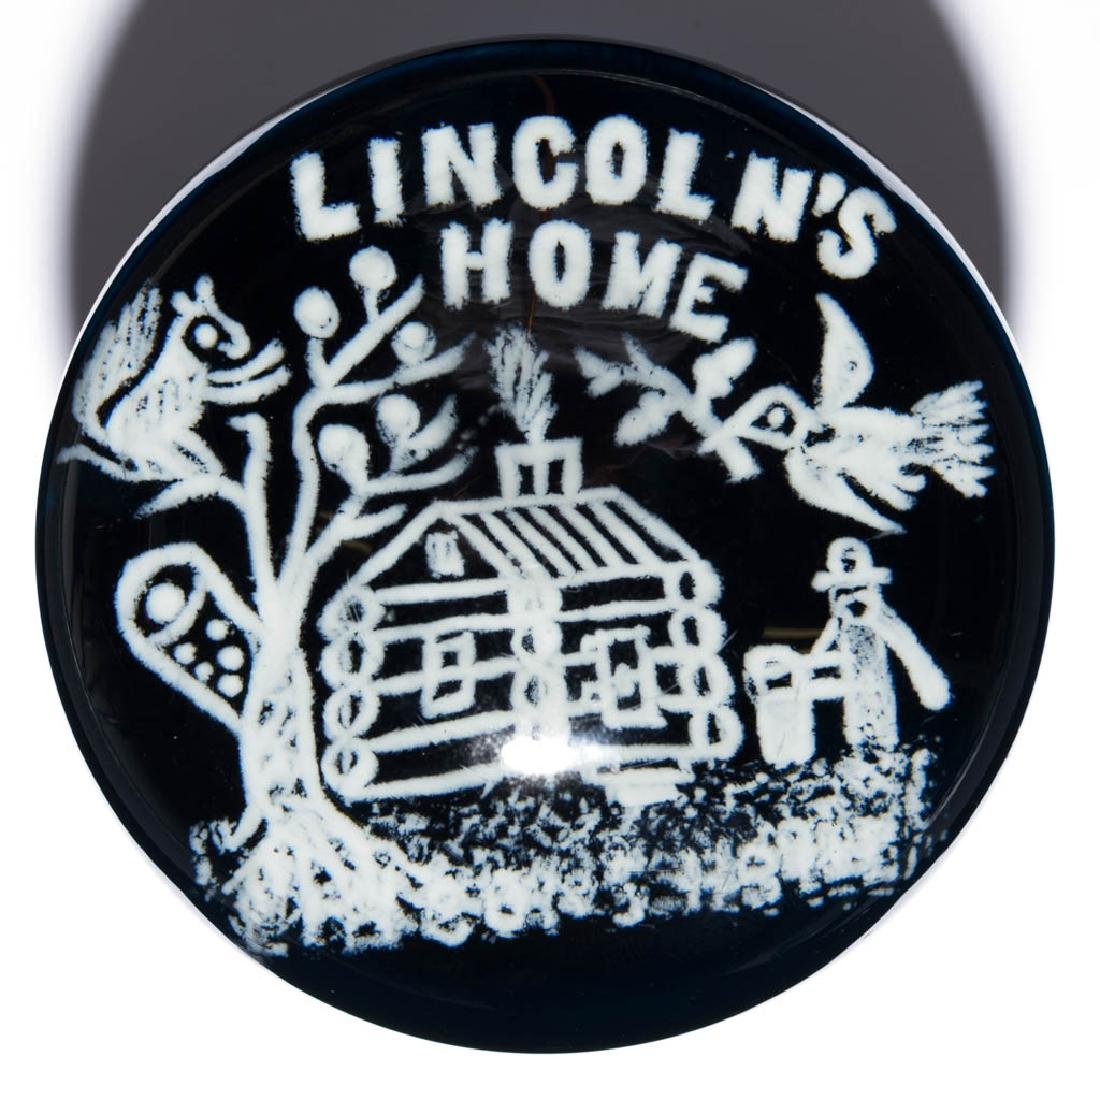 LINCOLN'S HOME FRIT PAPERWEIGHT